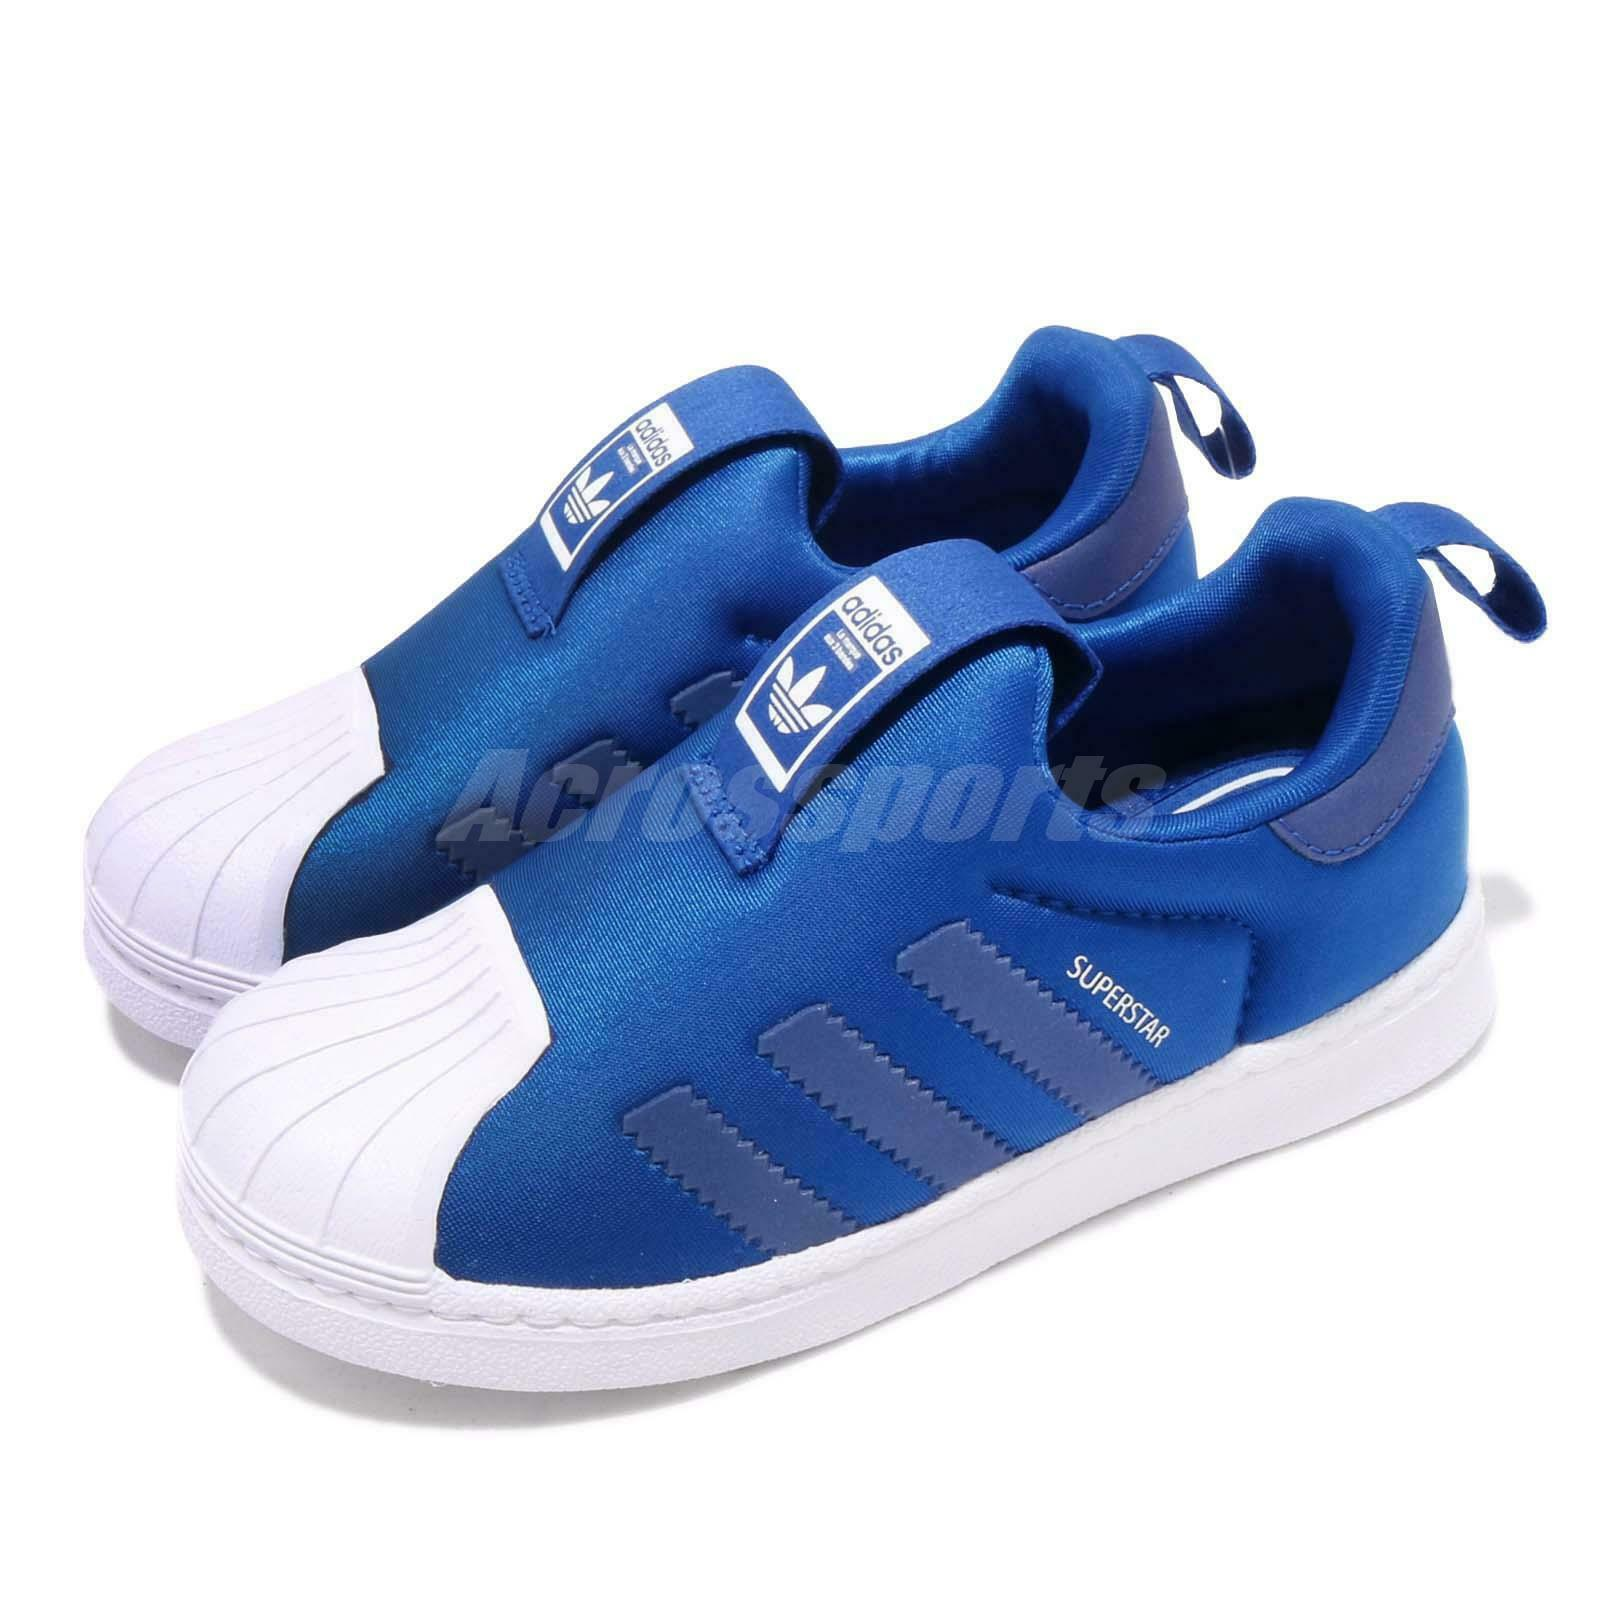 Adidas Originals Superstar 360 I bluee White  TD Toddler Infant Baby shoes CG6579  exclusive